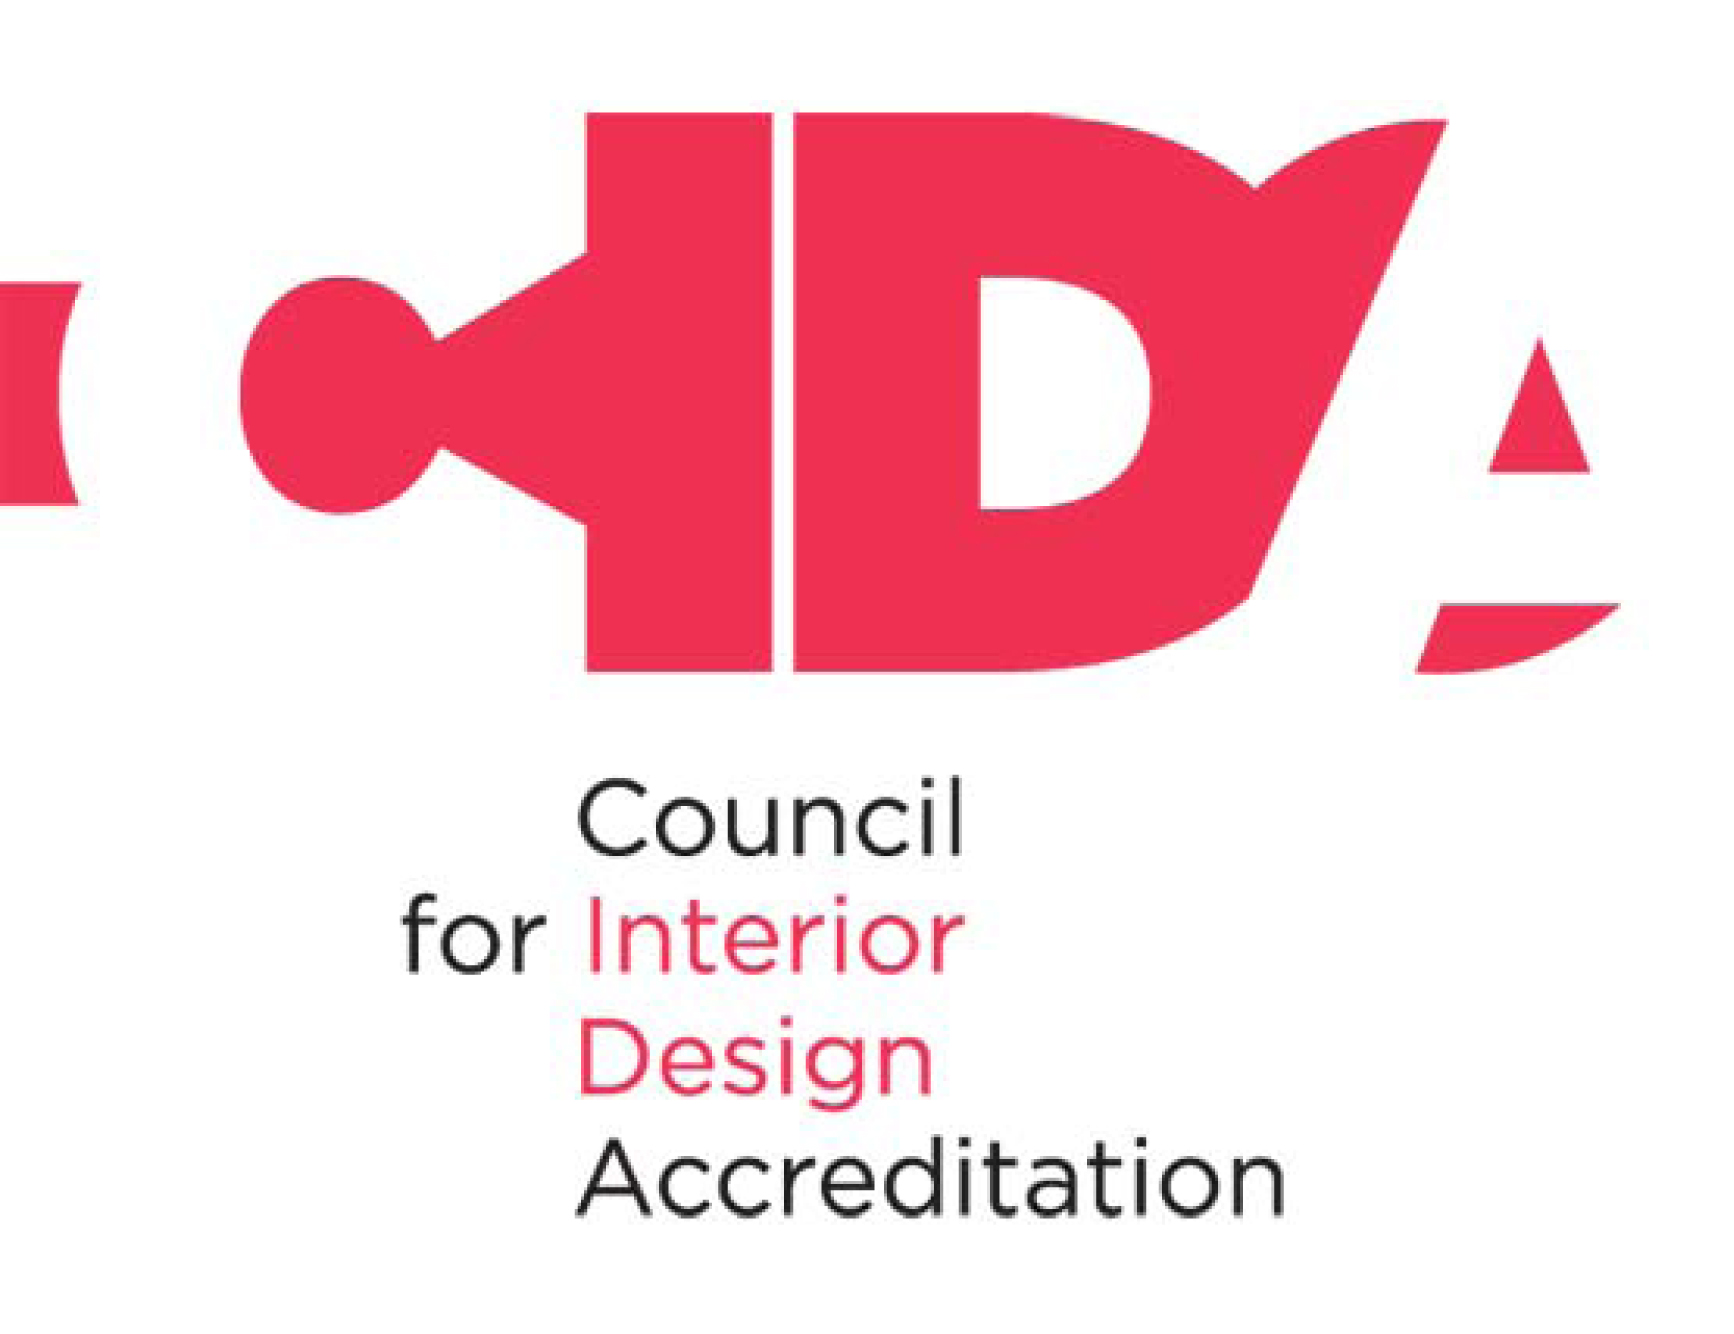 council for interior design accreditation logo - Interior Design Logo Ideas